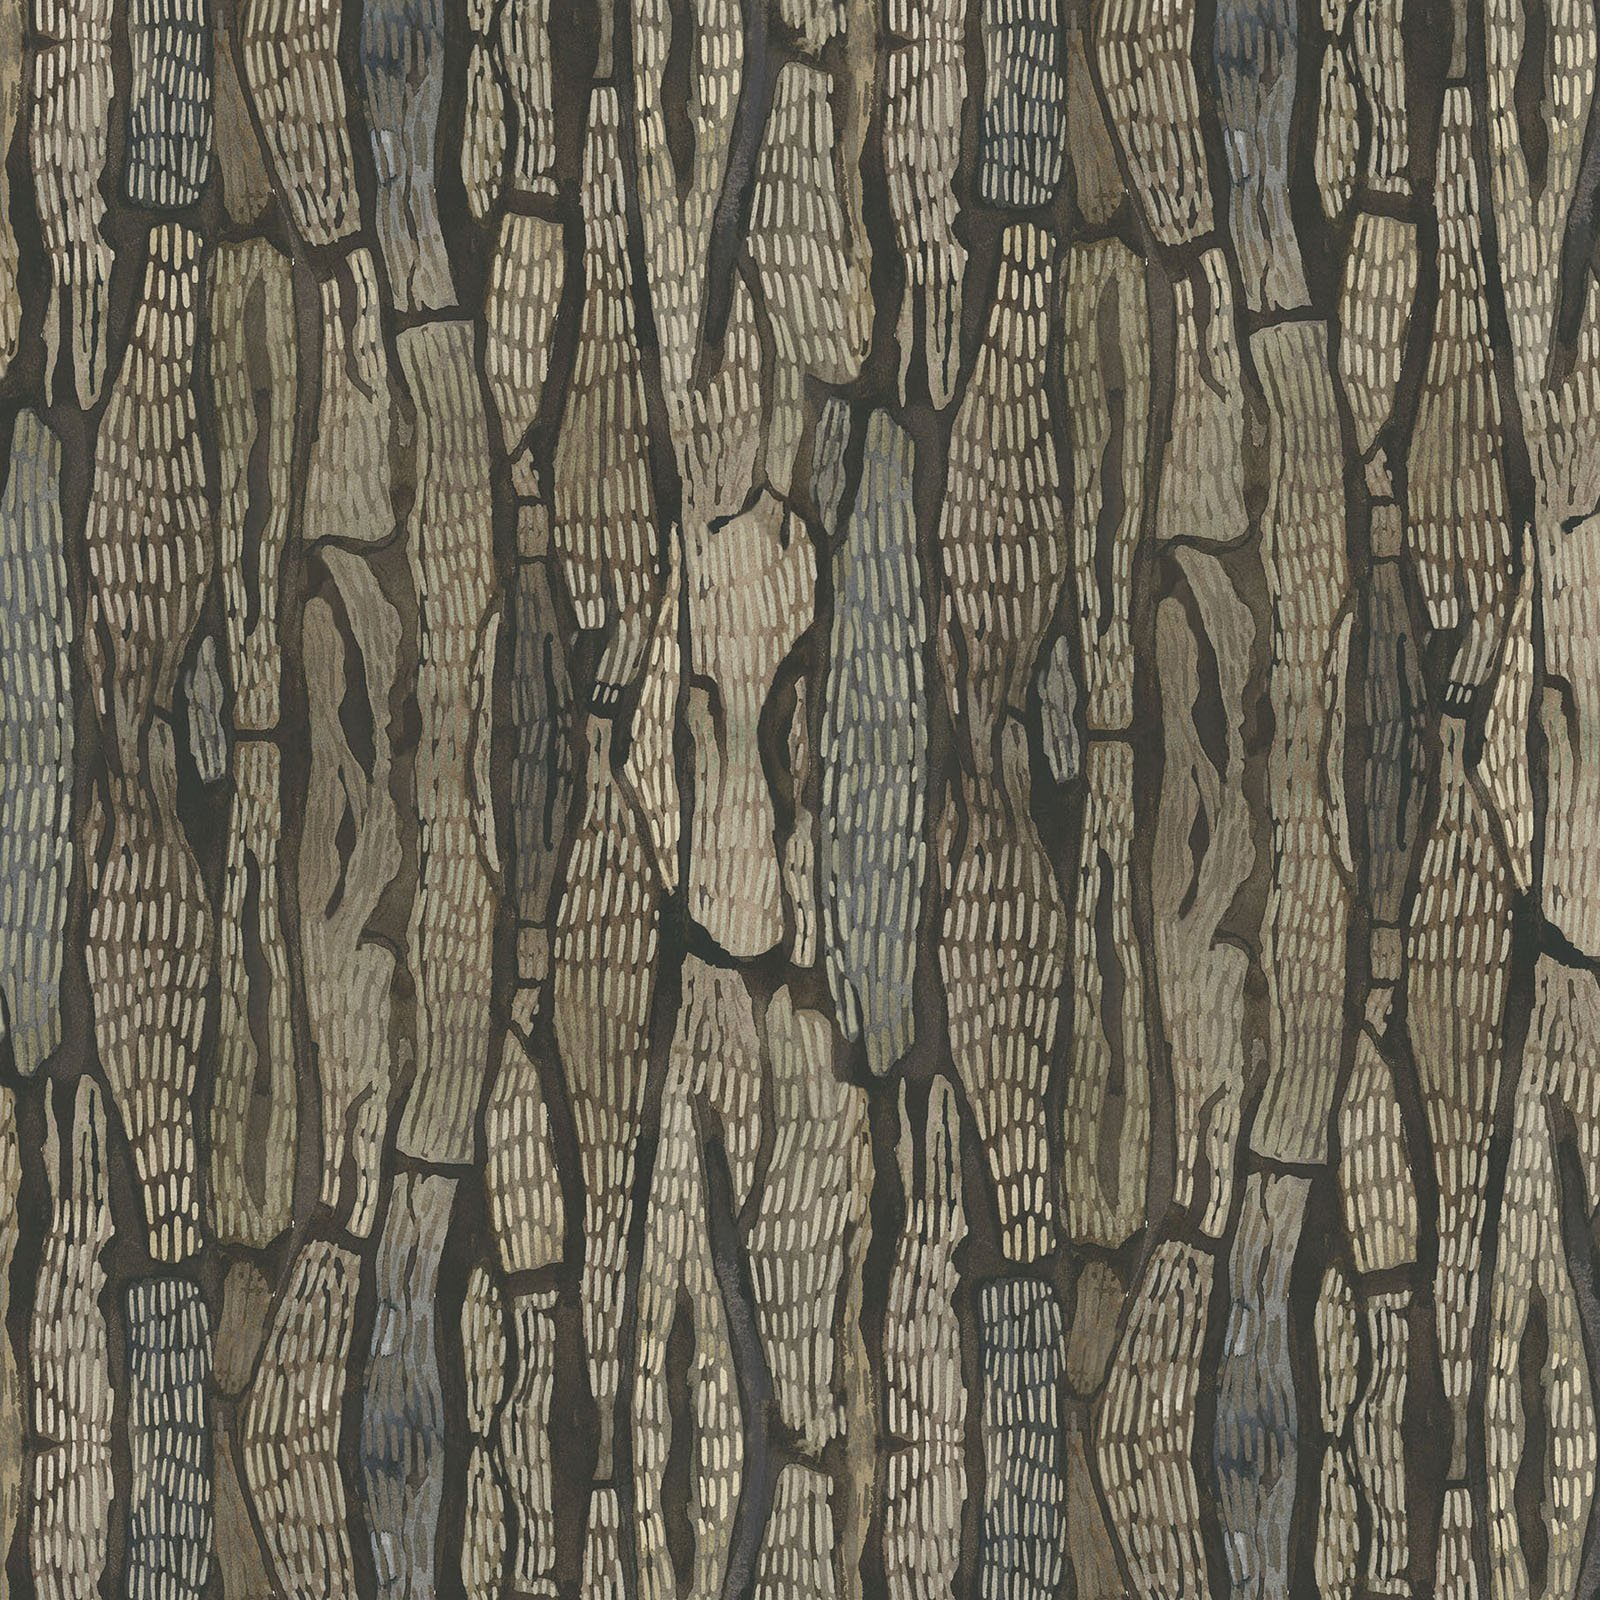 FRET-4335 Z - FOREST RETREAT BY JETTY HOME BARK BROWN